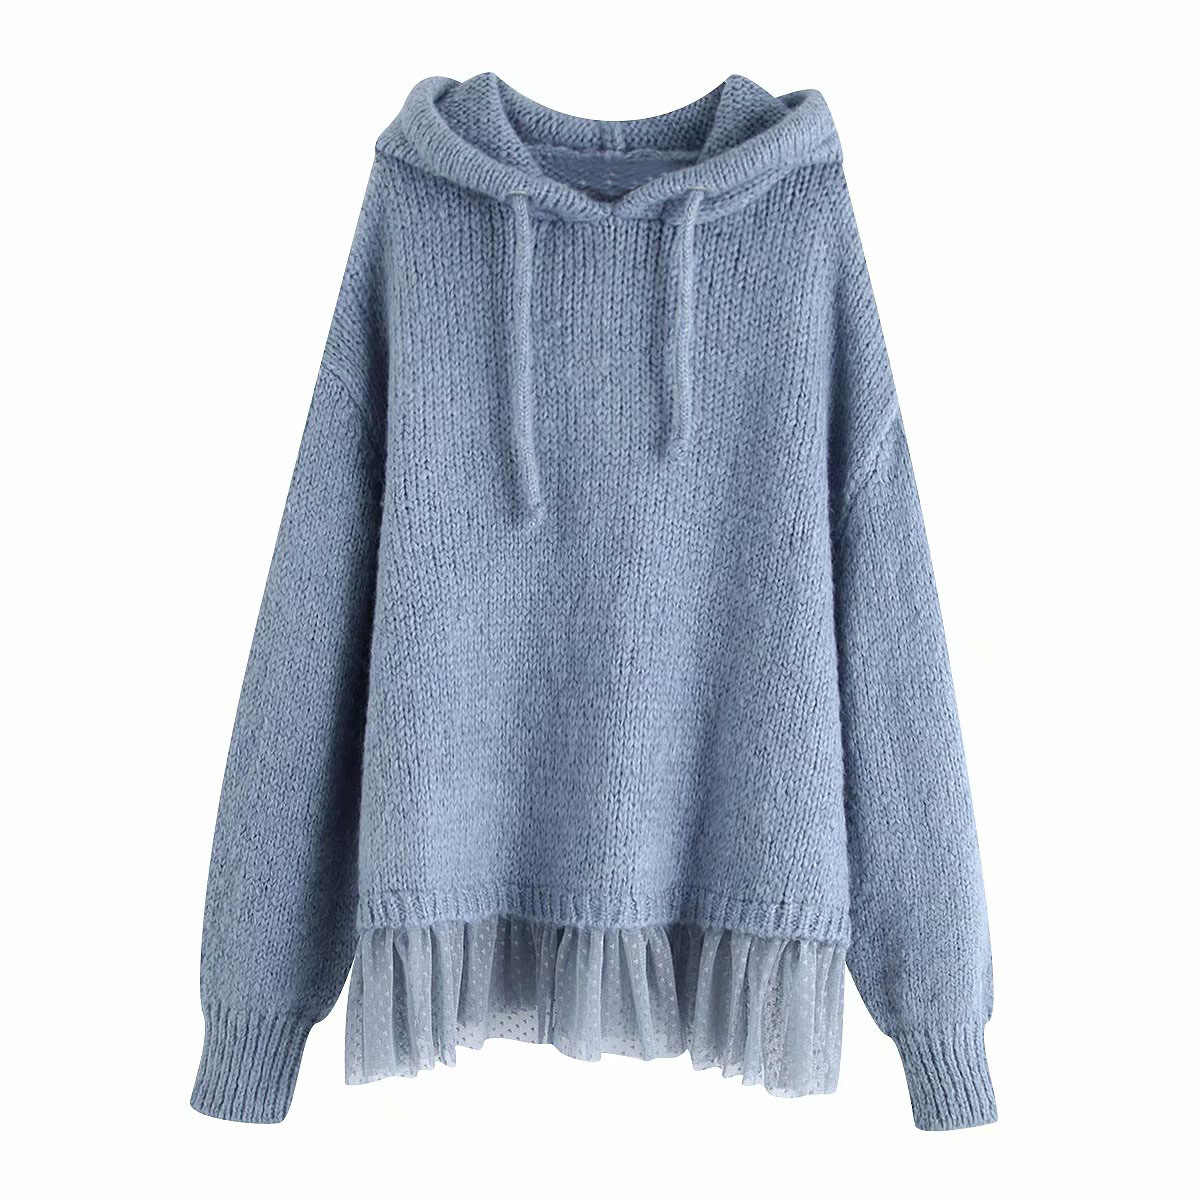 Winter oversize hooded Sweatshirts Women Knitted Pullovers casual Long Sleeve hoodies korean Chic Tops